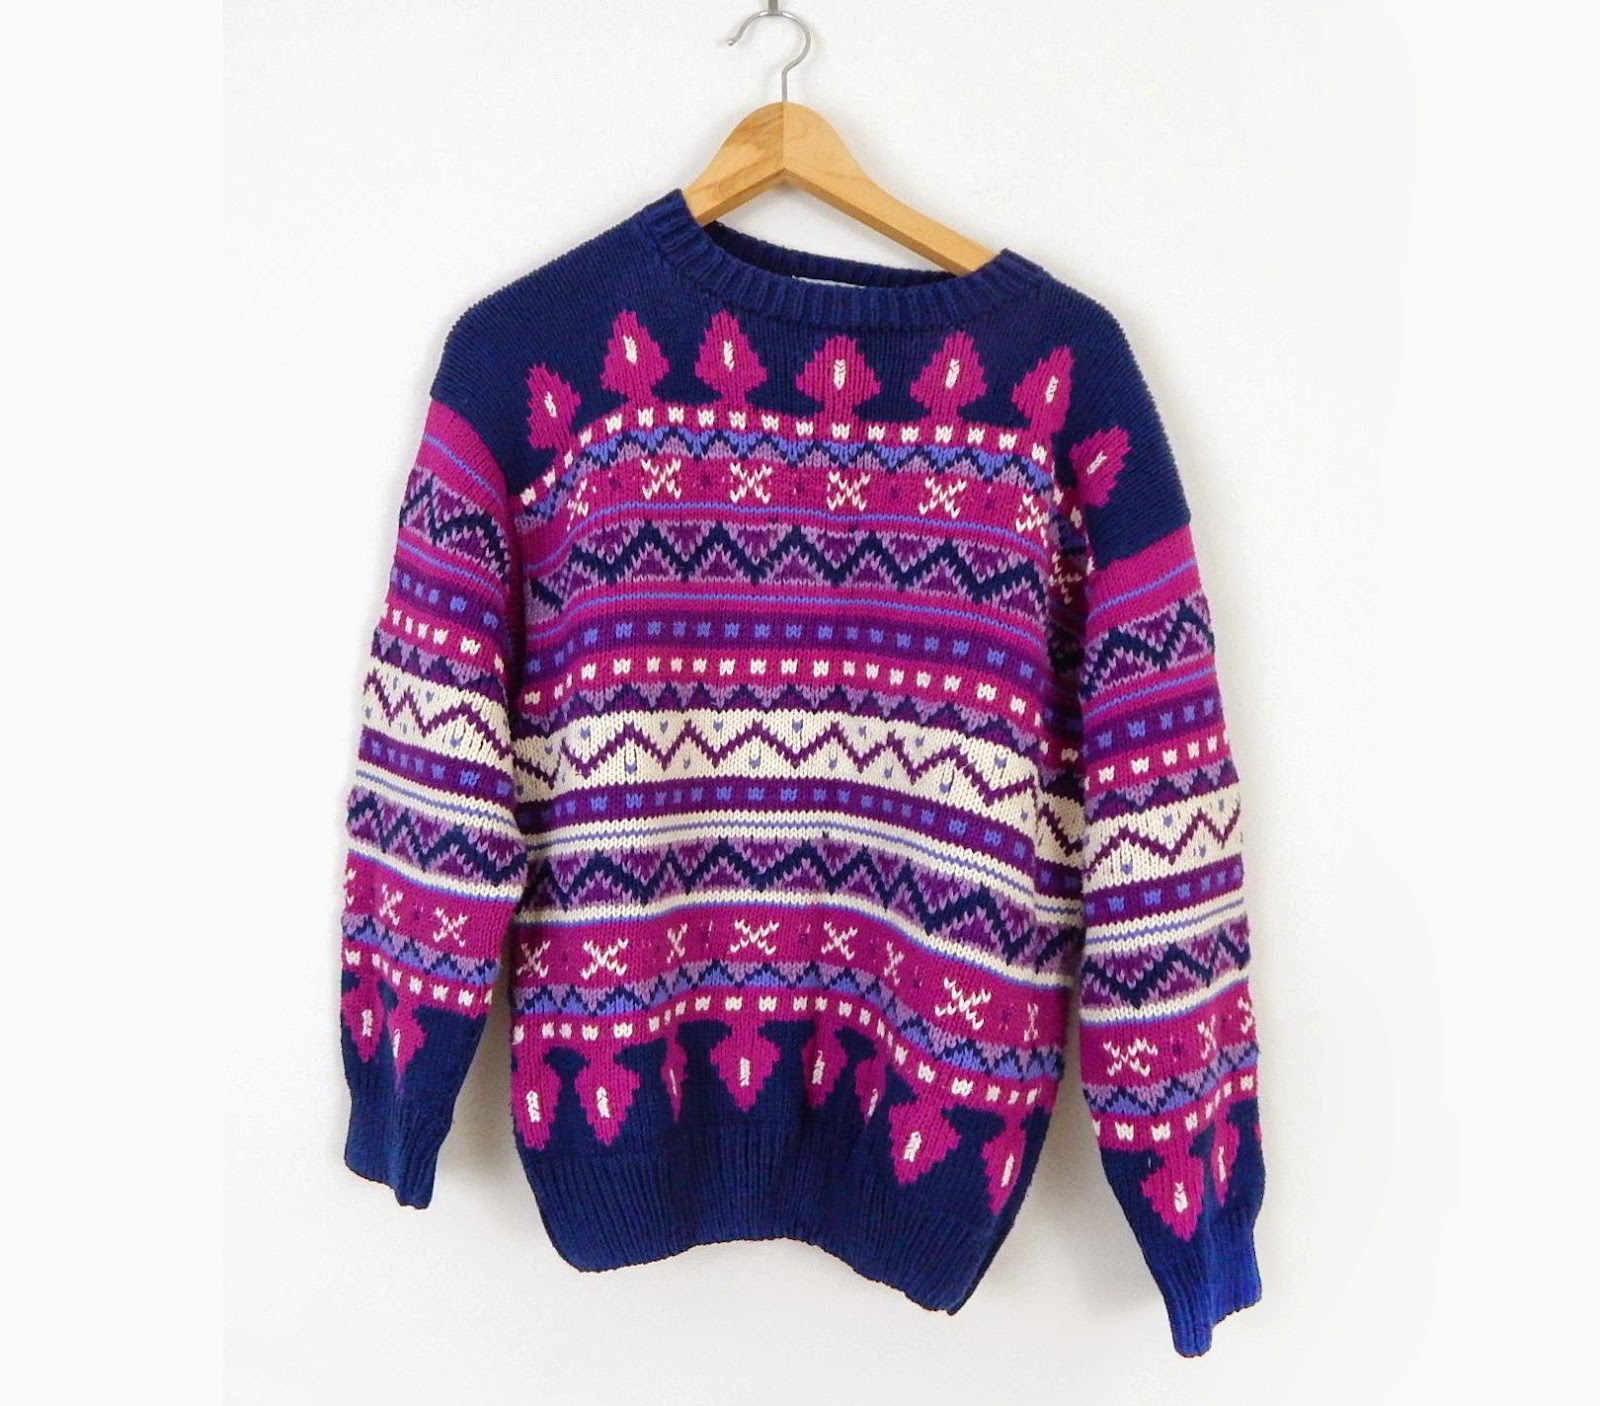 https://www.etsy.com/listing/209911064/vintage-peruvian-fair-isle-sweater-navy?